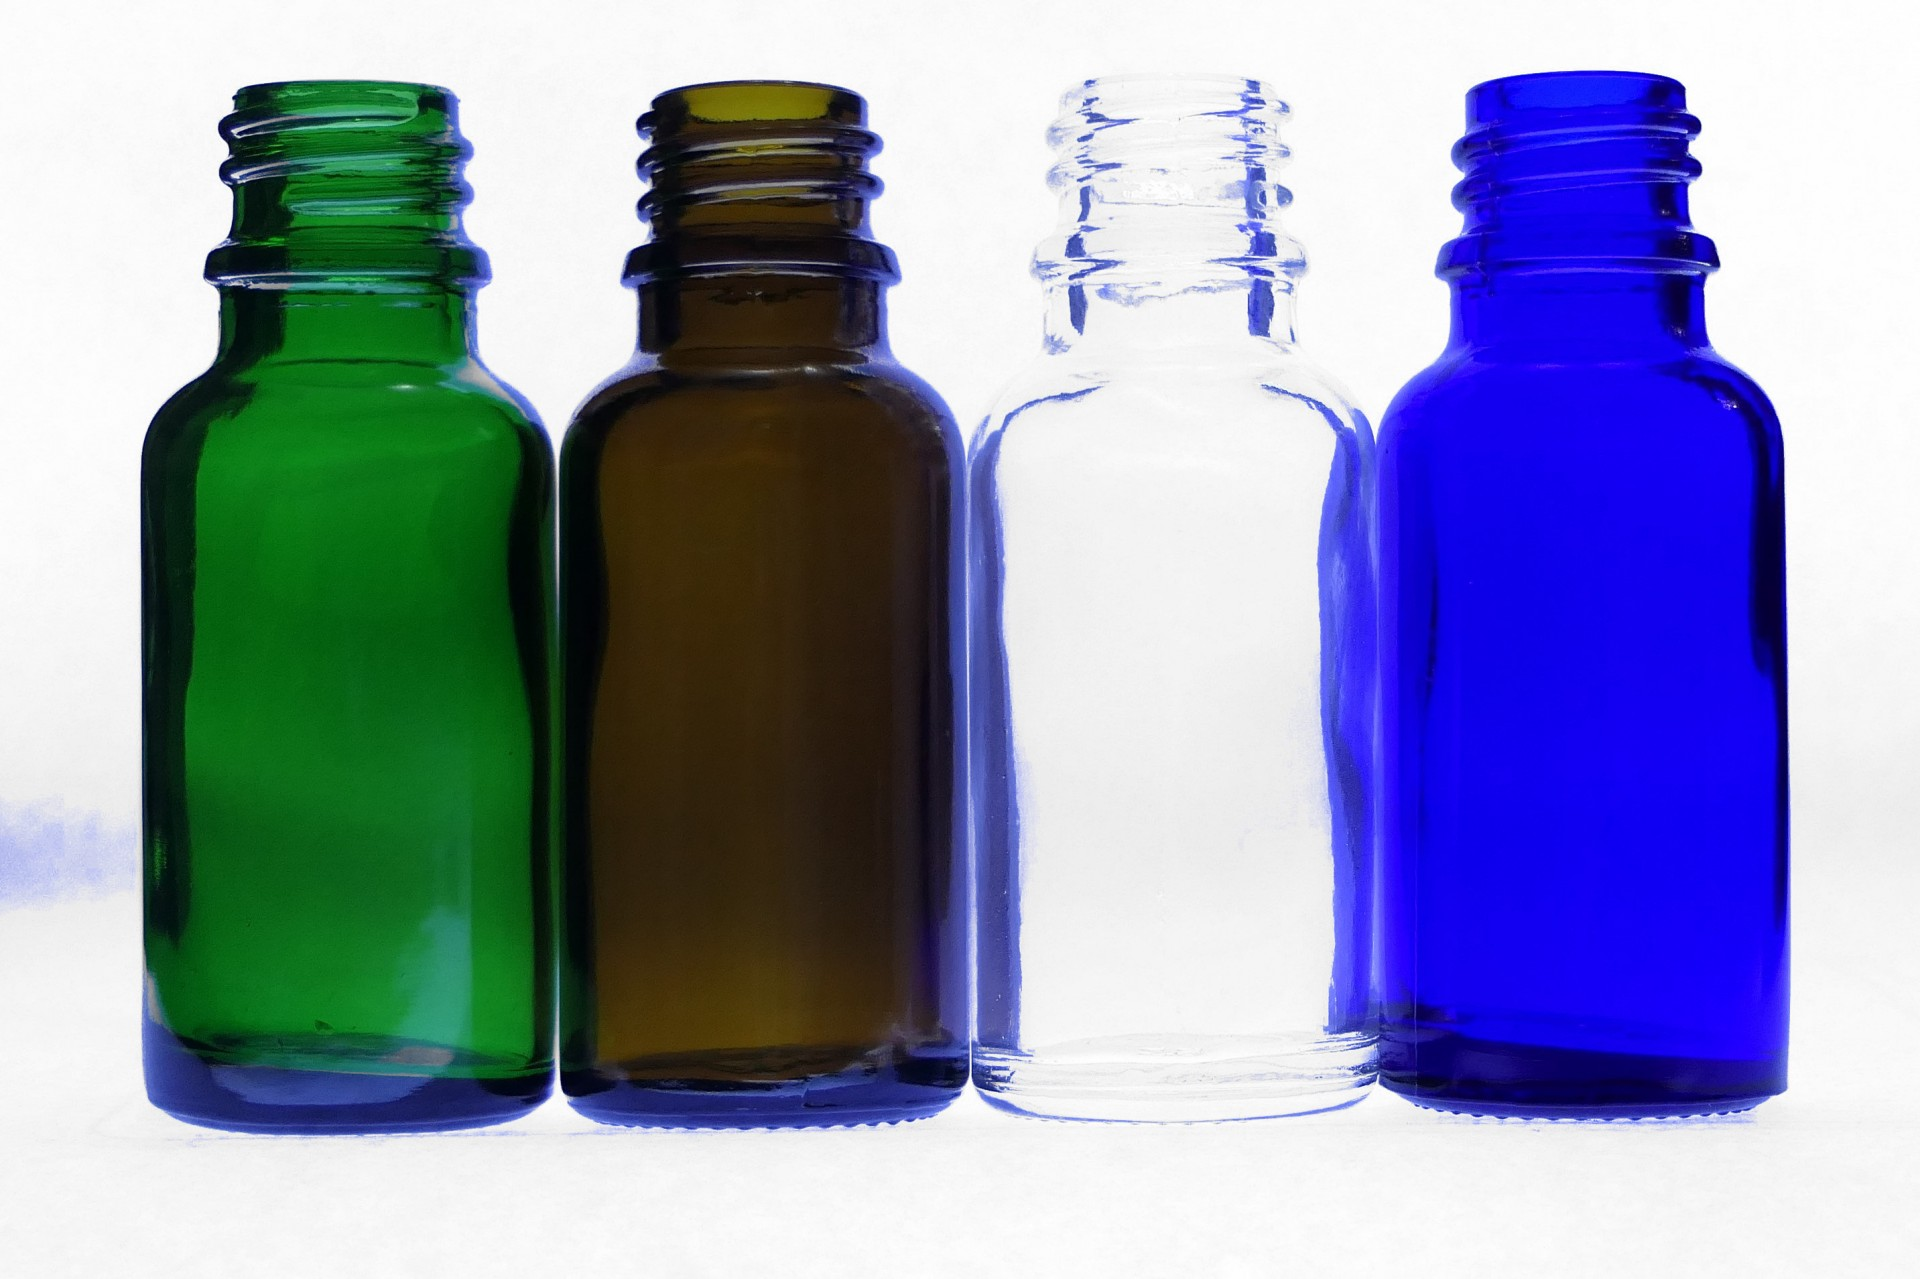 20ml Moulded Glass Bottles Clear Amber Blue Green